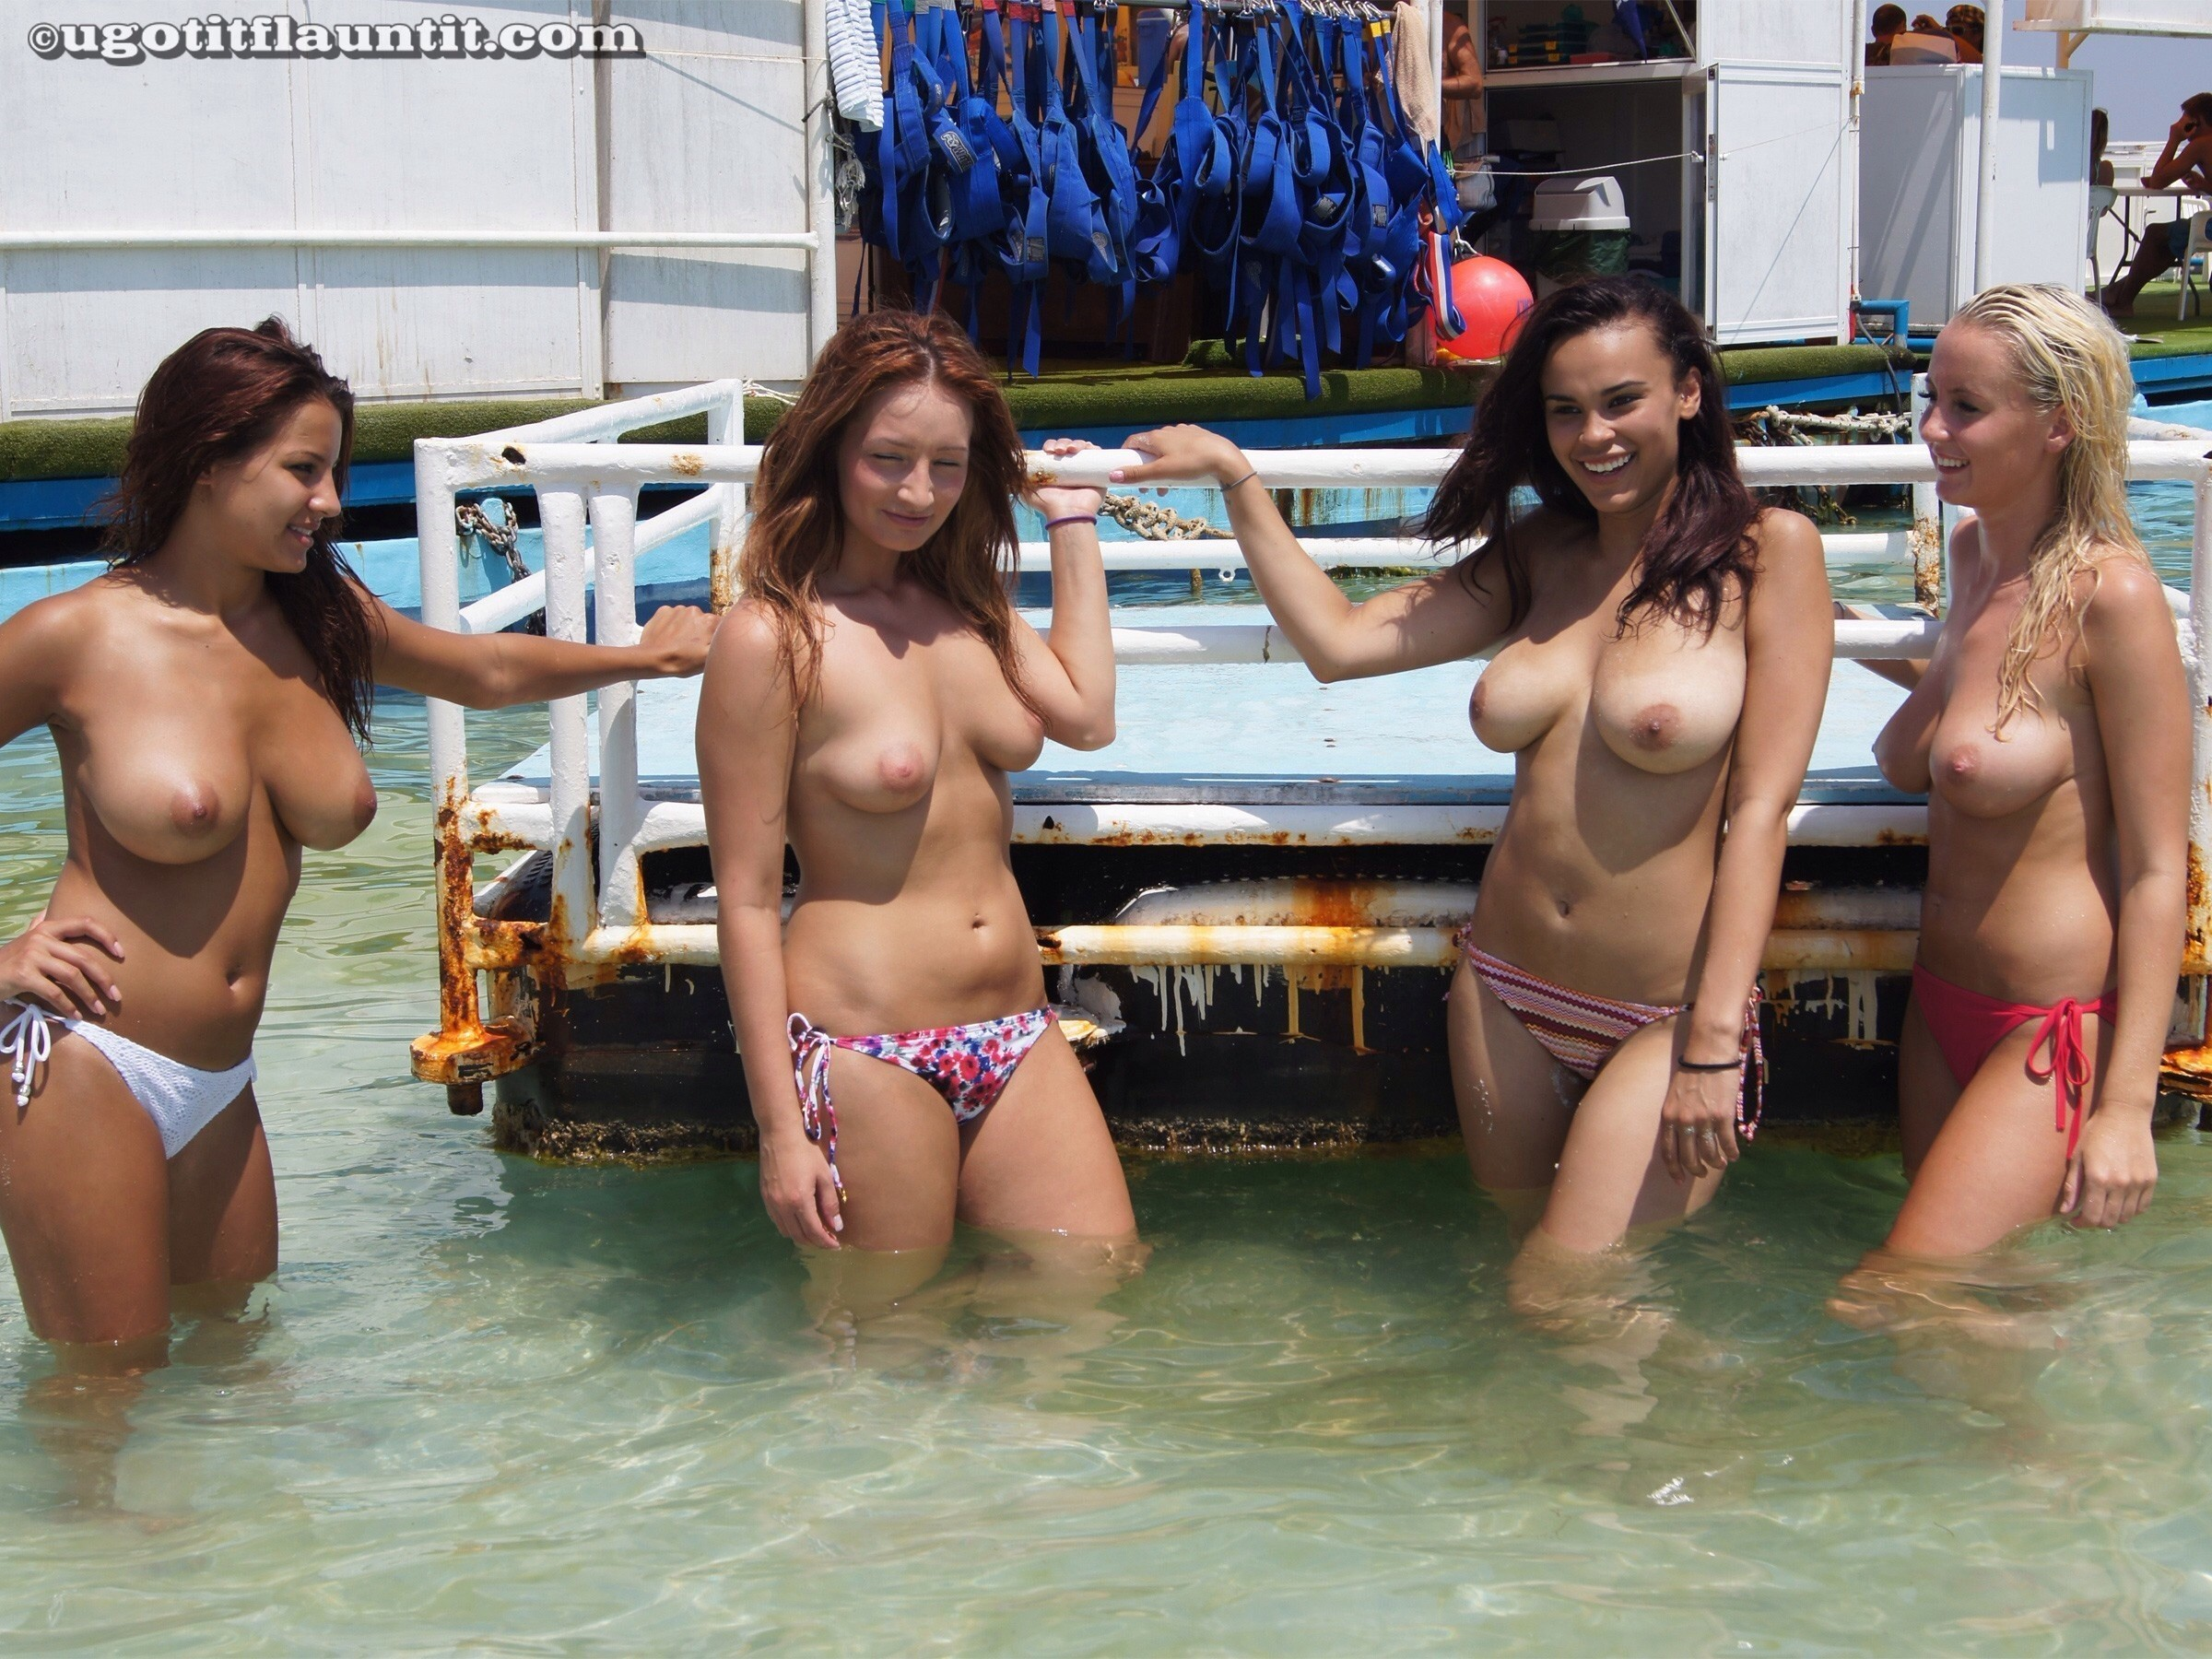 Free topless aussie girl movies, hot naked latinas swimming